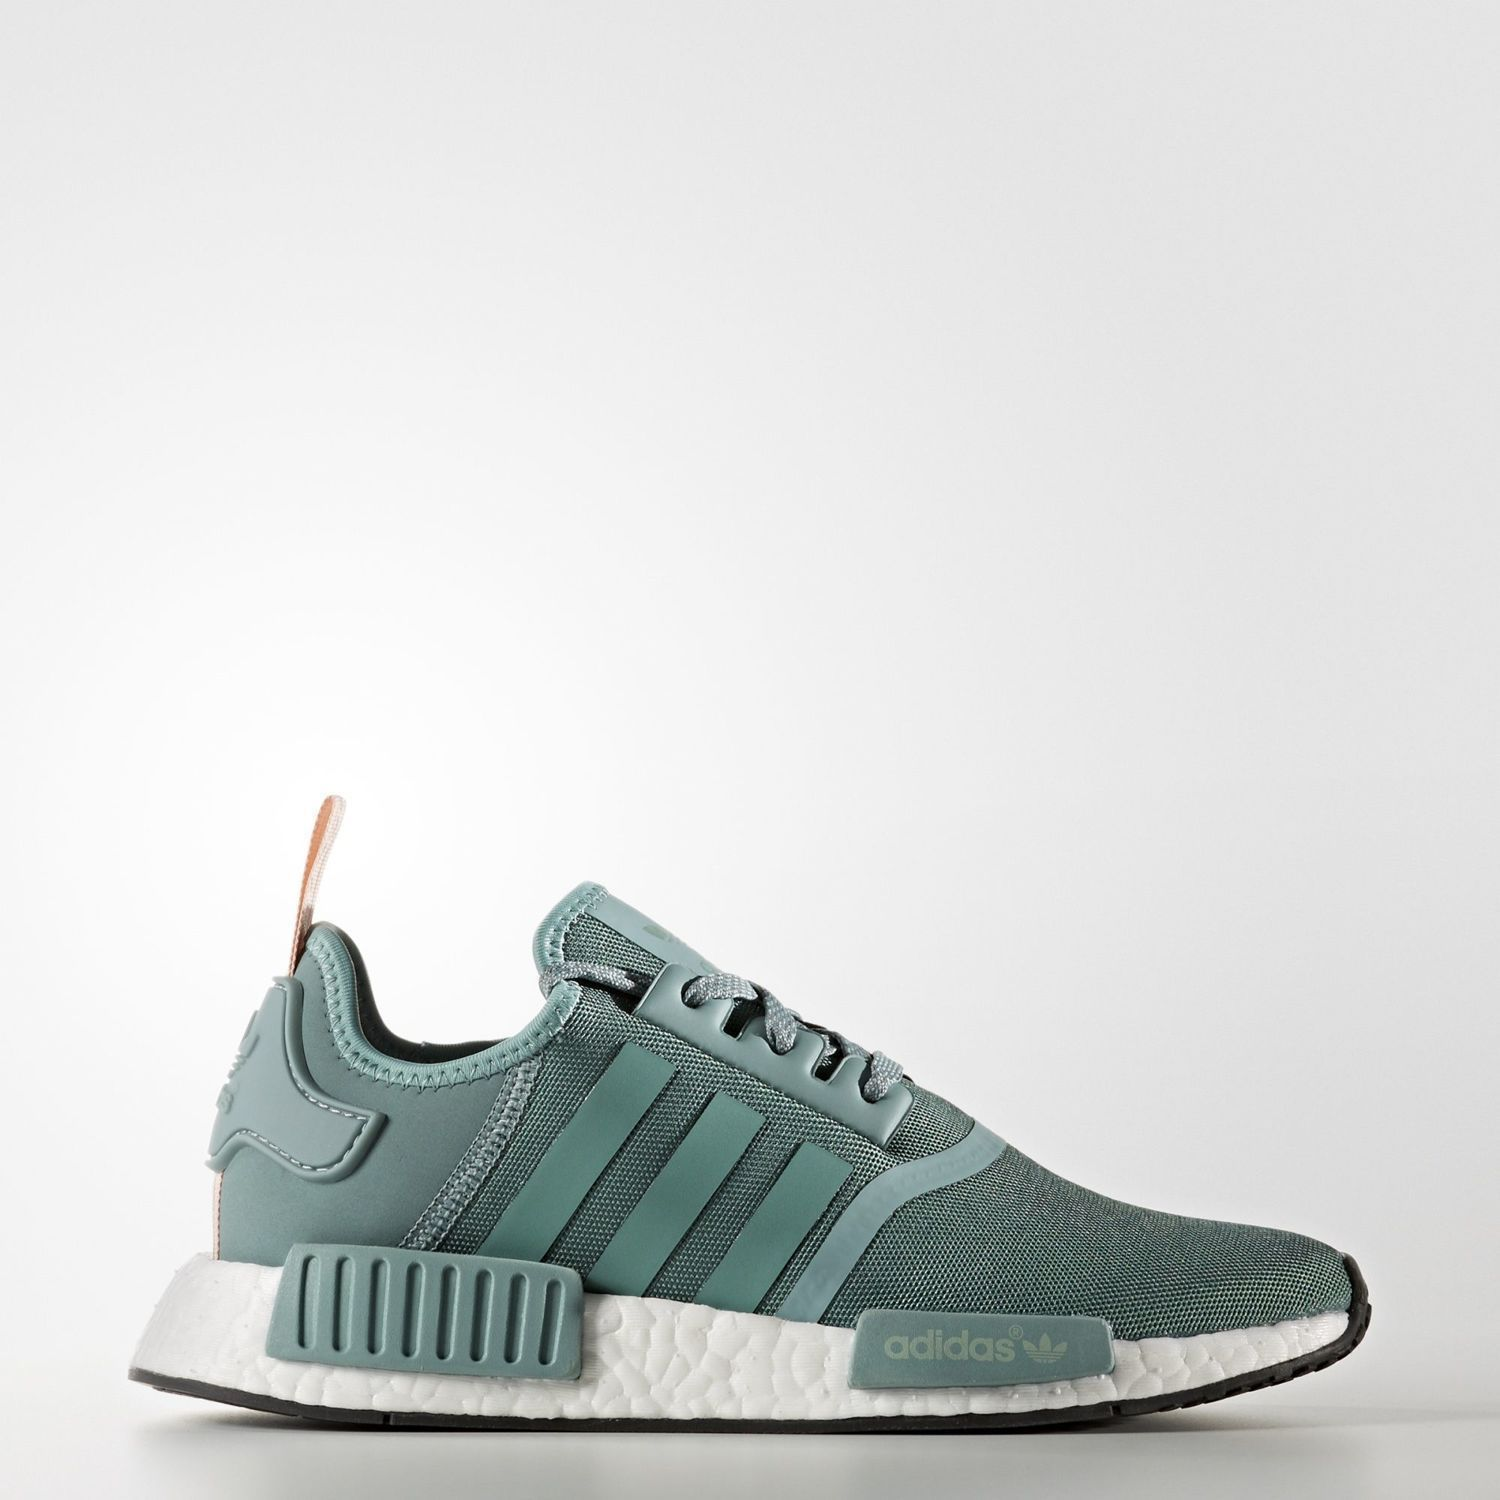 quality design bea7e 3d64b Women S Adidas Nmd R1 Vapour Steel   Teal   Pink S76010 Green Turquoise 6-10